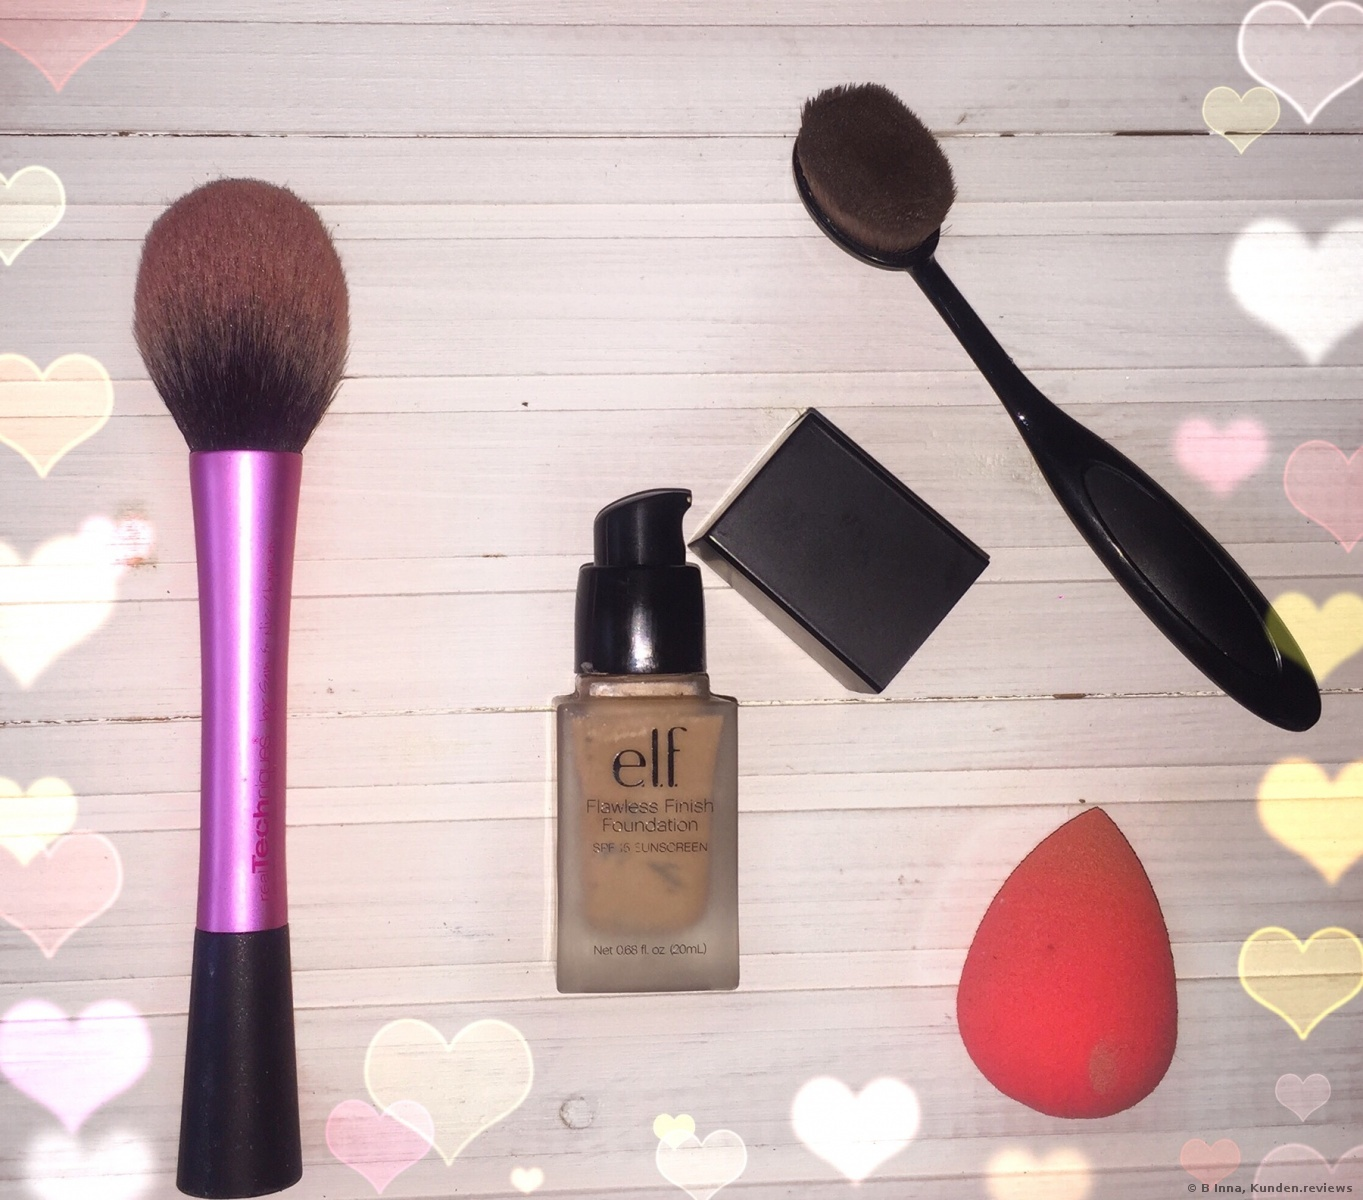 E.L.F. Studio  Flawless Finish Foundation Foto